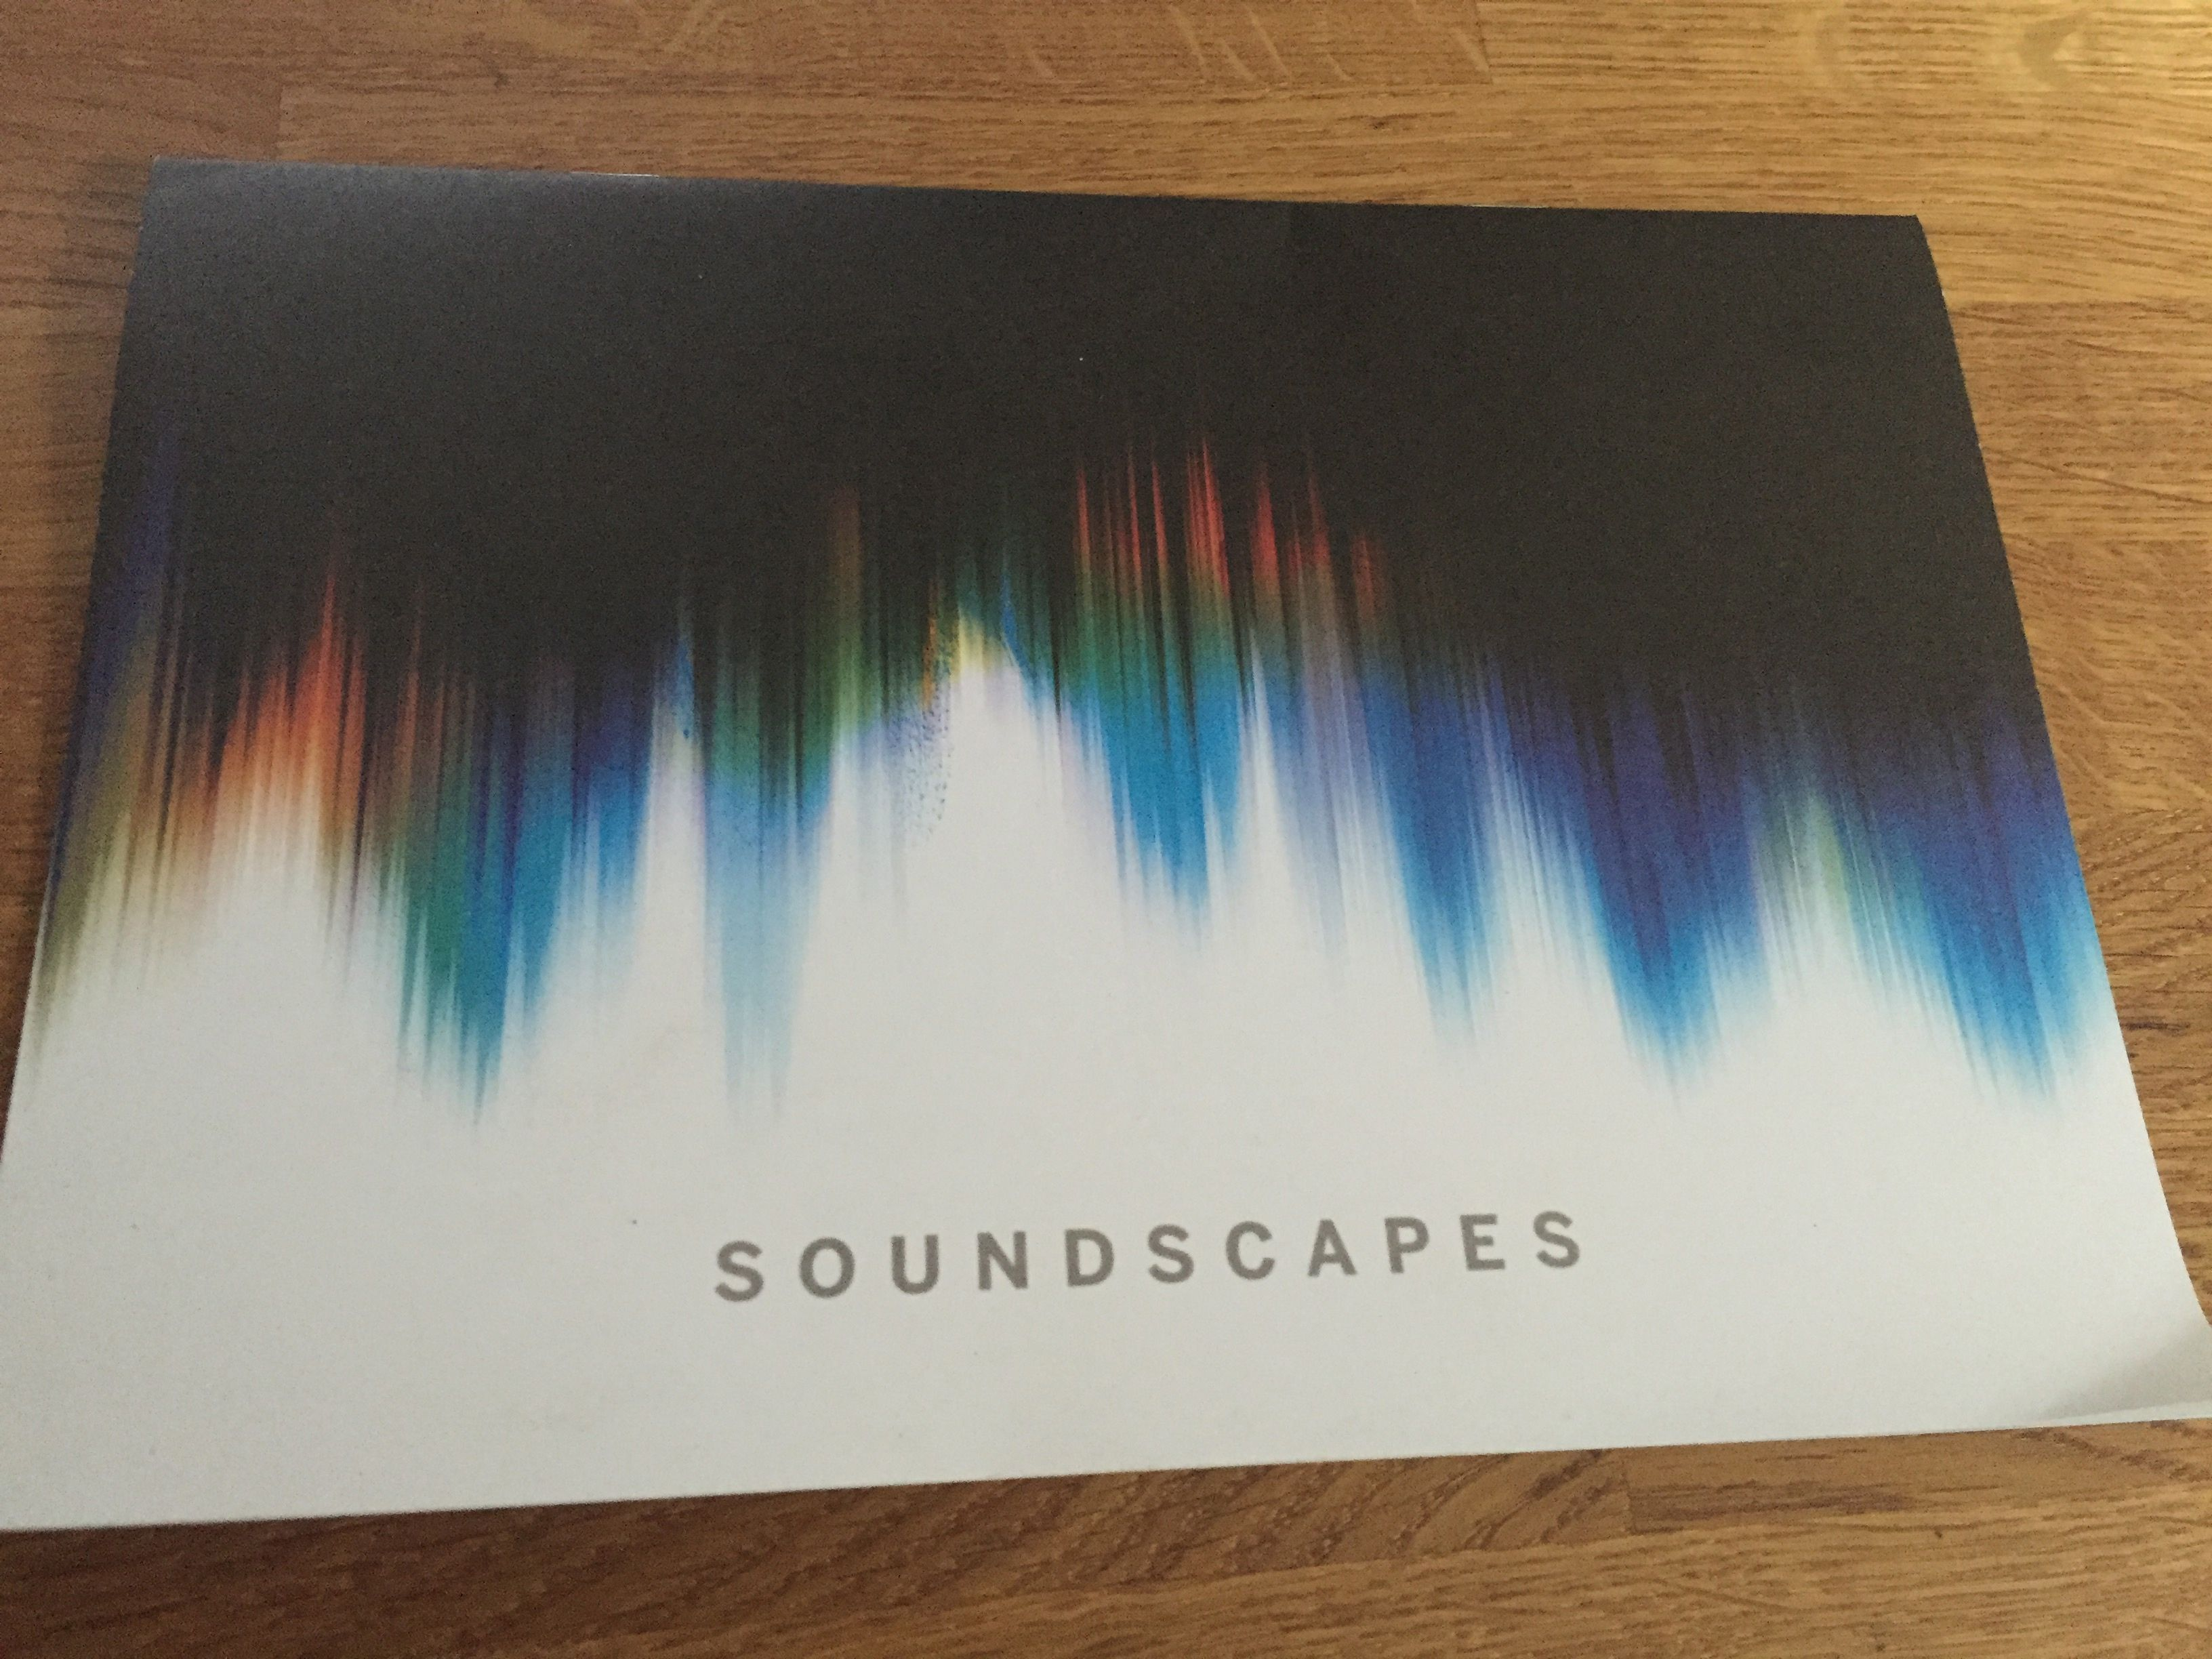 Soundscapes Exhibition at the National Gallery